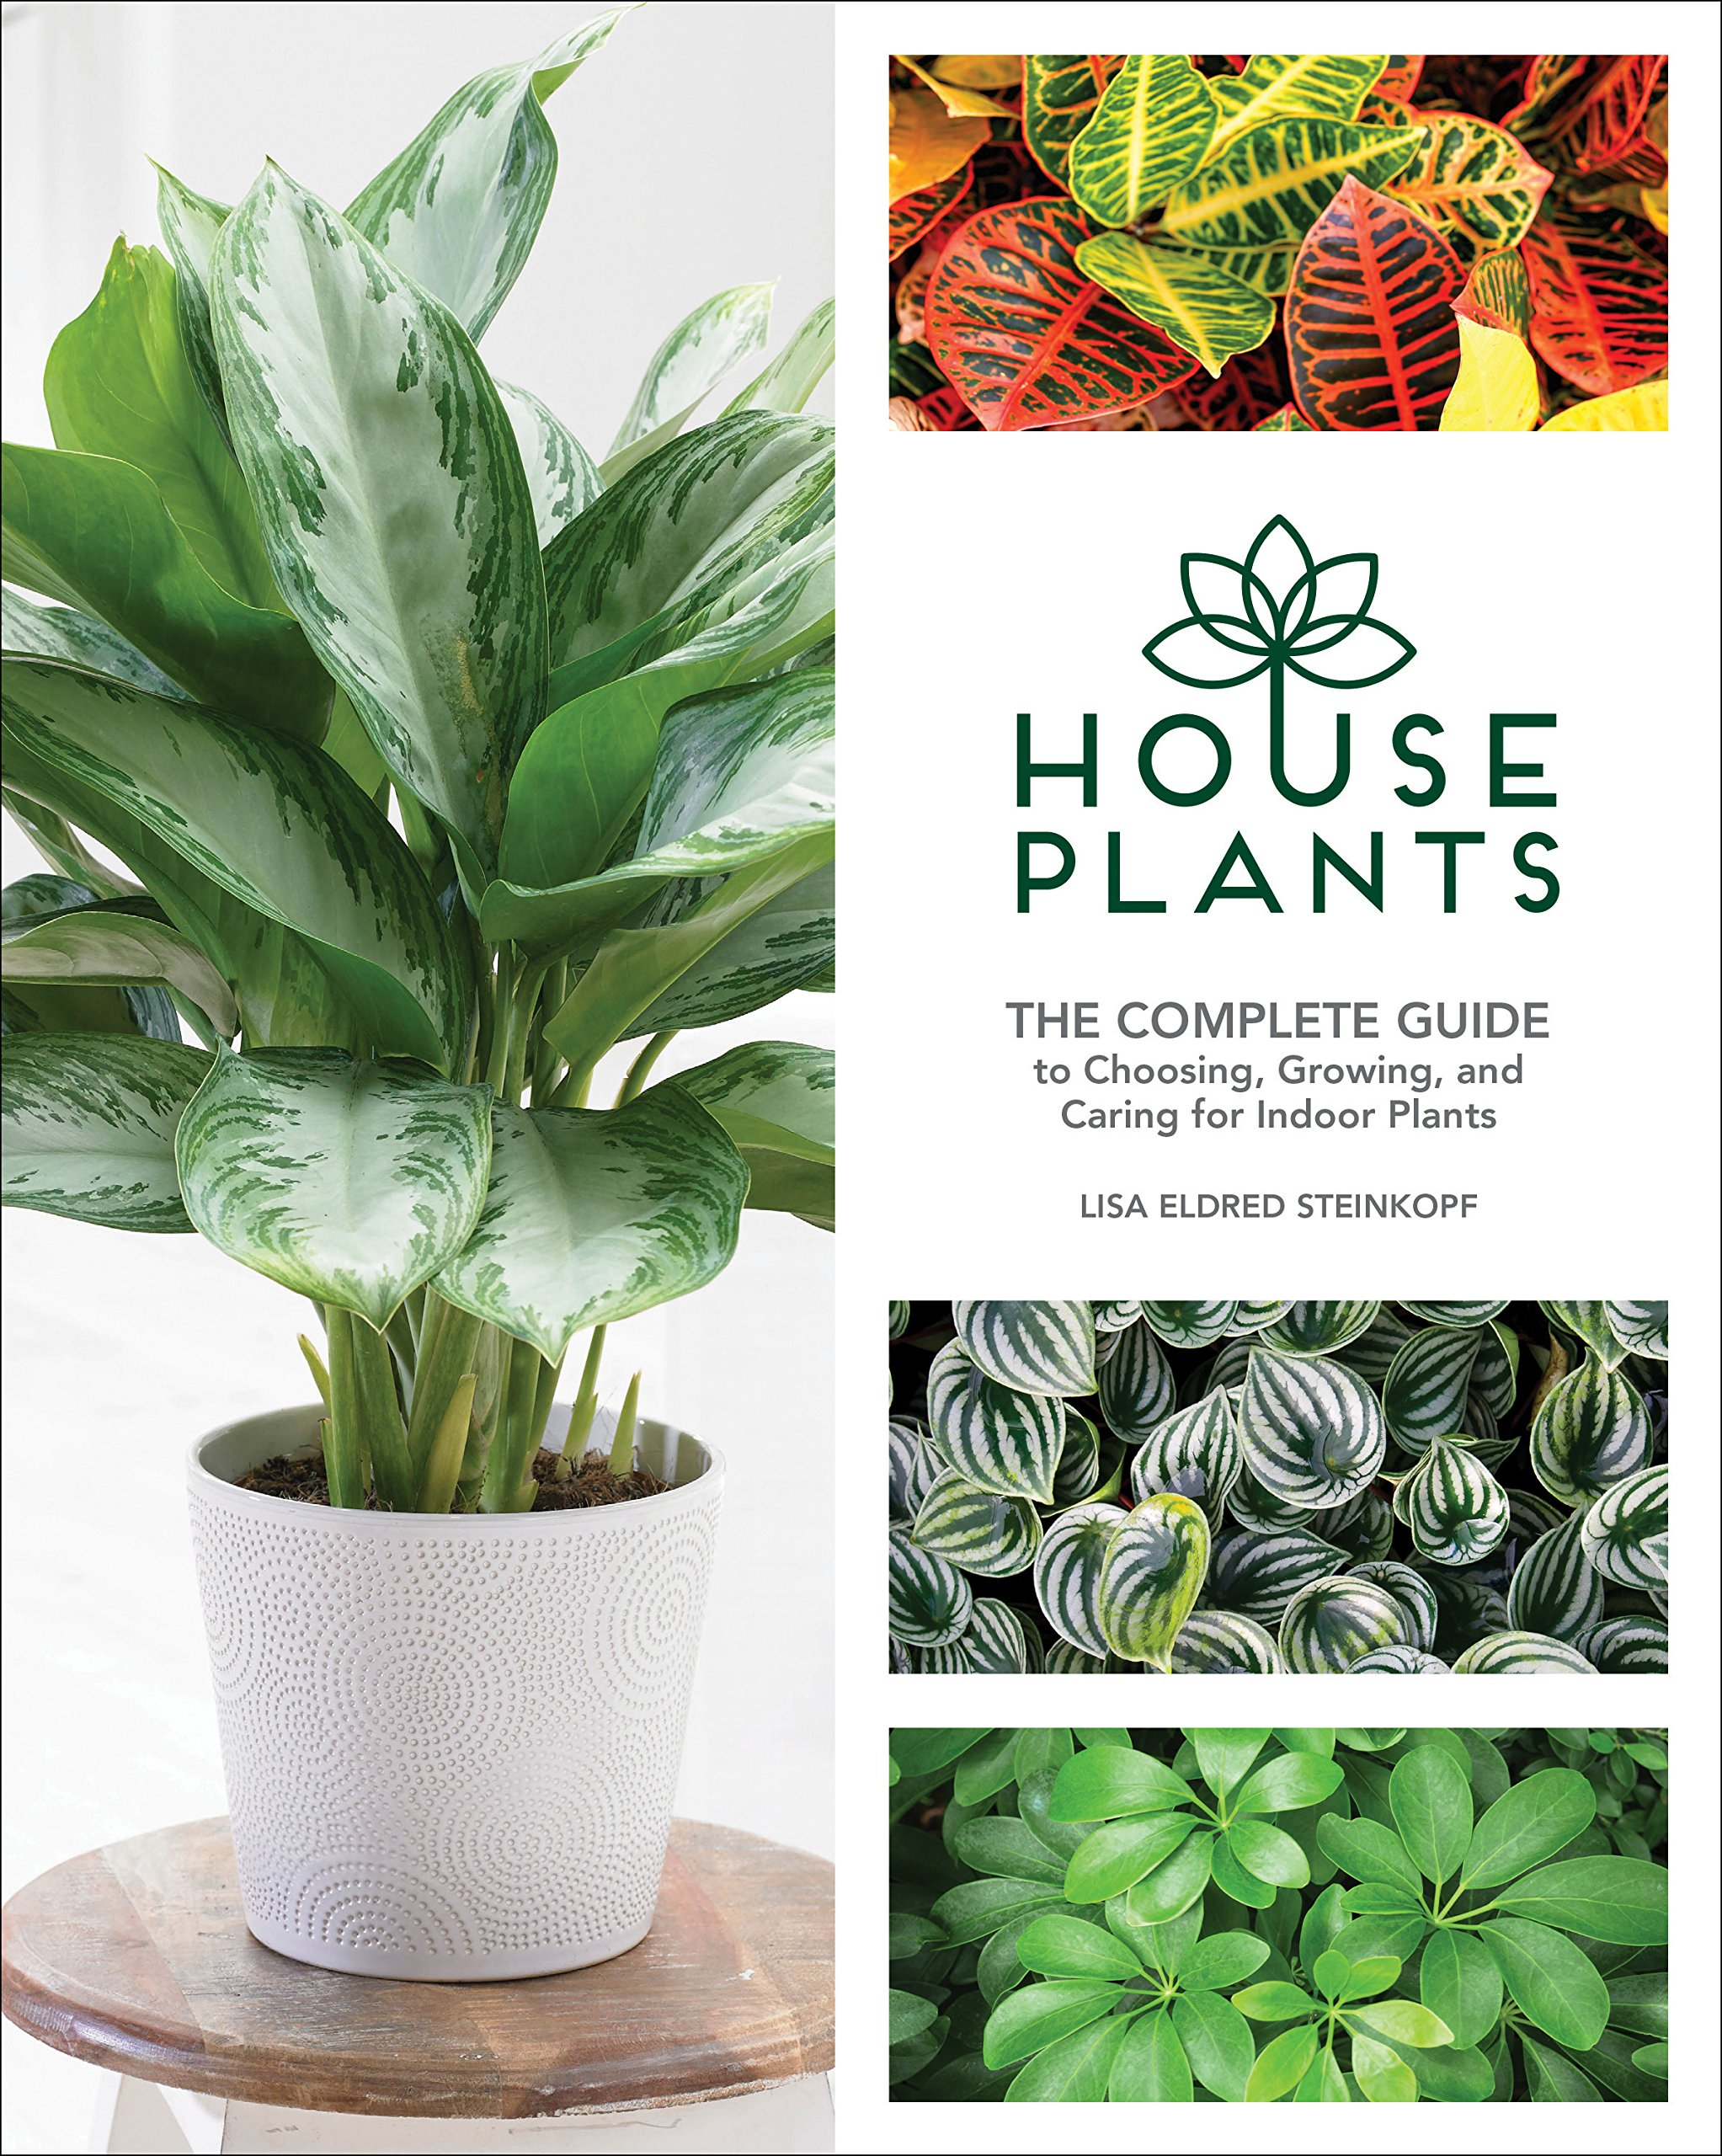 Houseplants The Complete Guide To Choosing Growing And Caring For Indoor Plants Steinkopf Lisa Eldred 9781591866909 Amazon Com Books